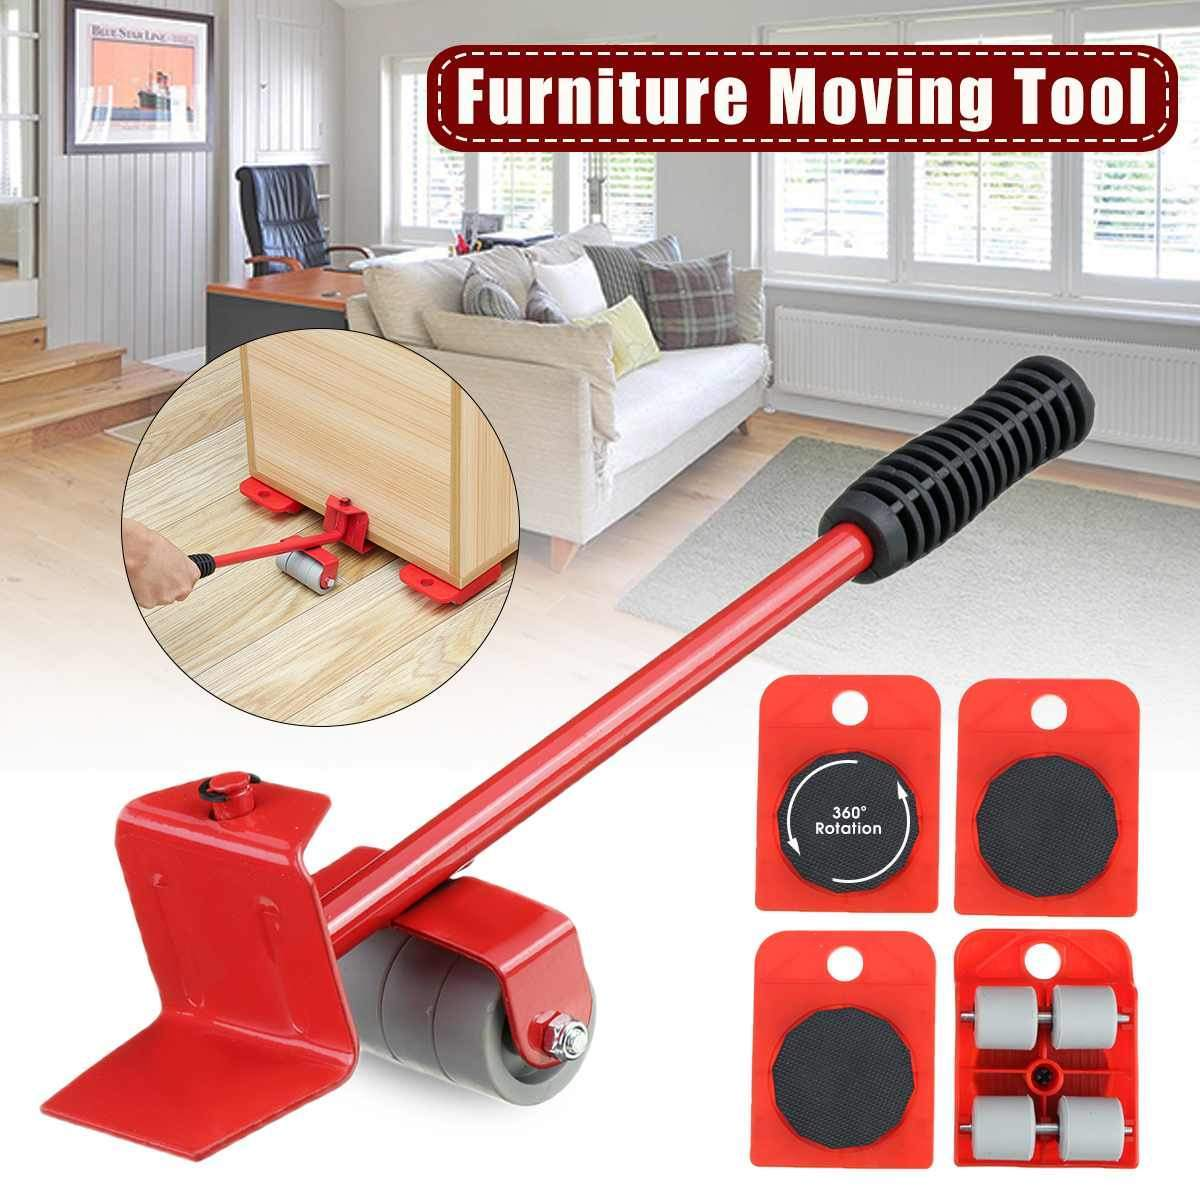 FURNITURE LIFTER & MOVER TOOL SET (FREE Clever Cutter Worth ₹499 if Paid Online)